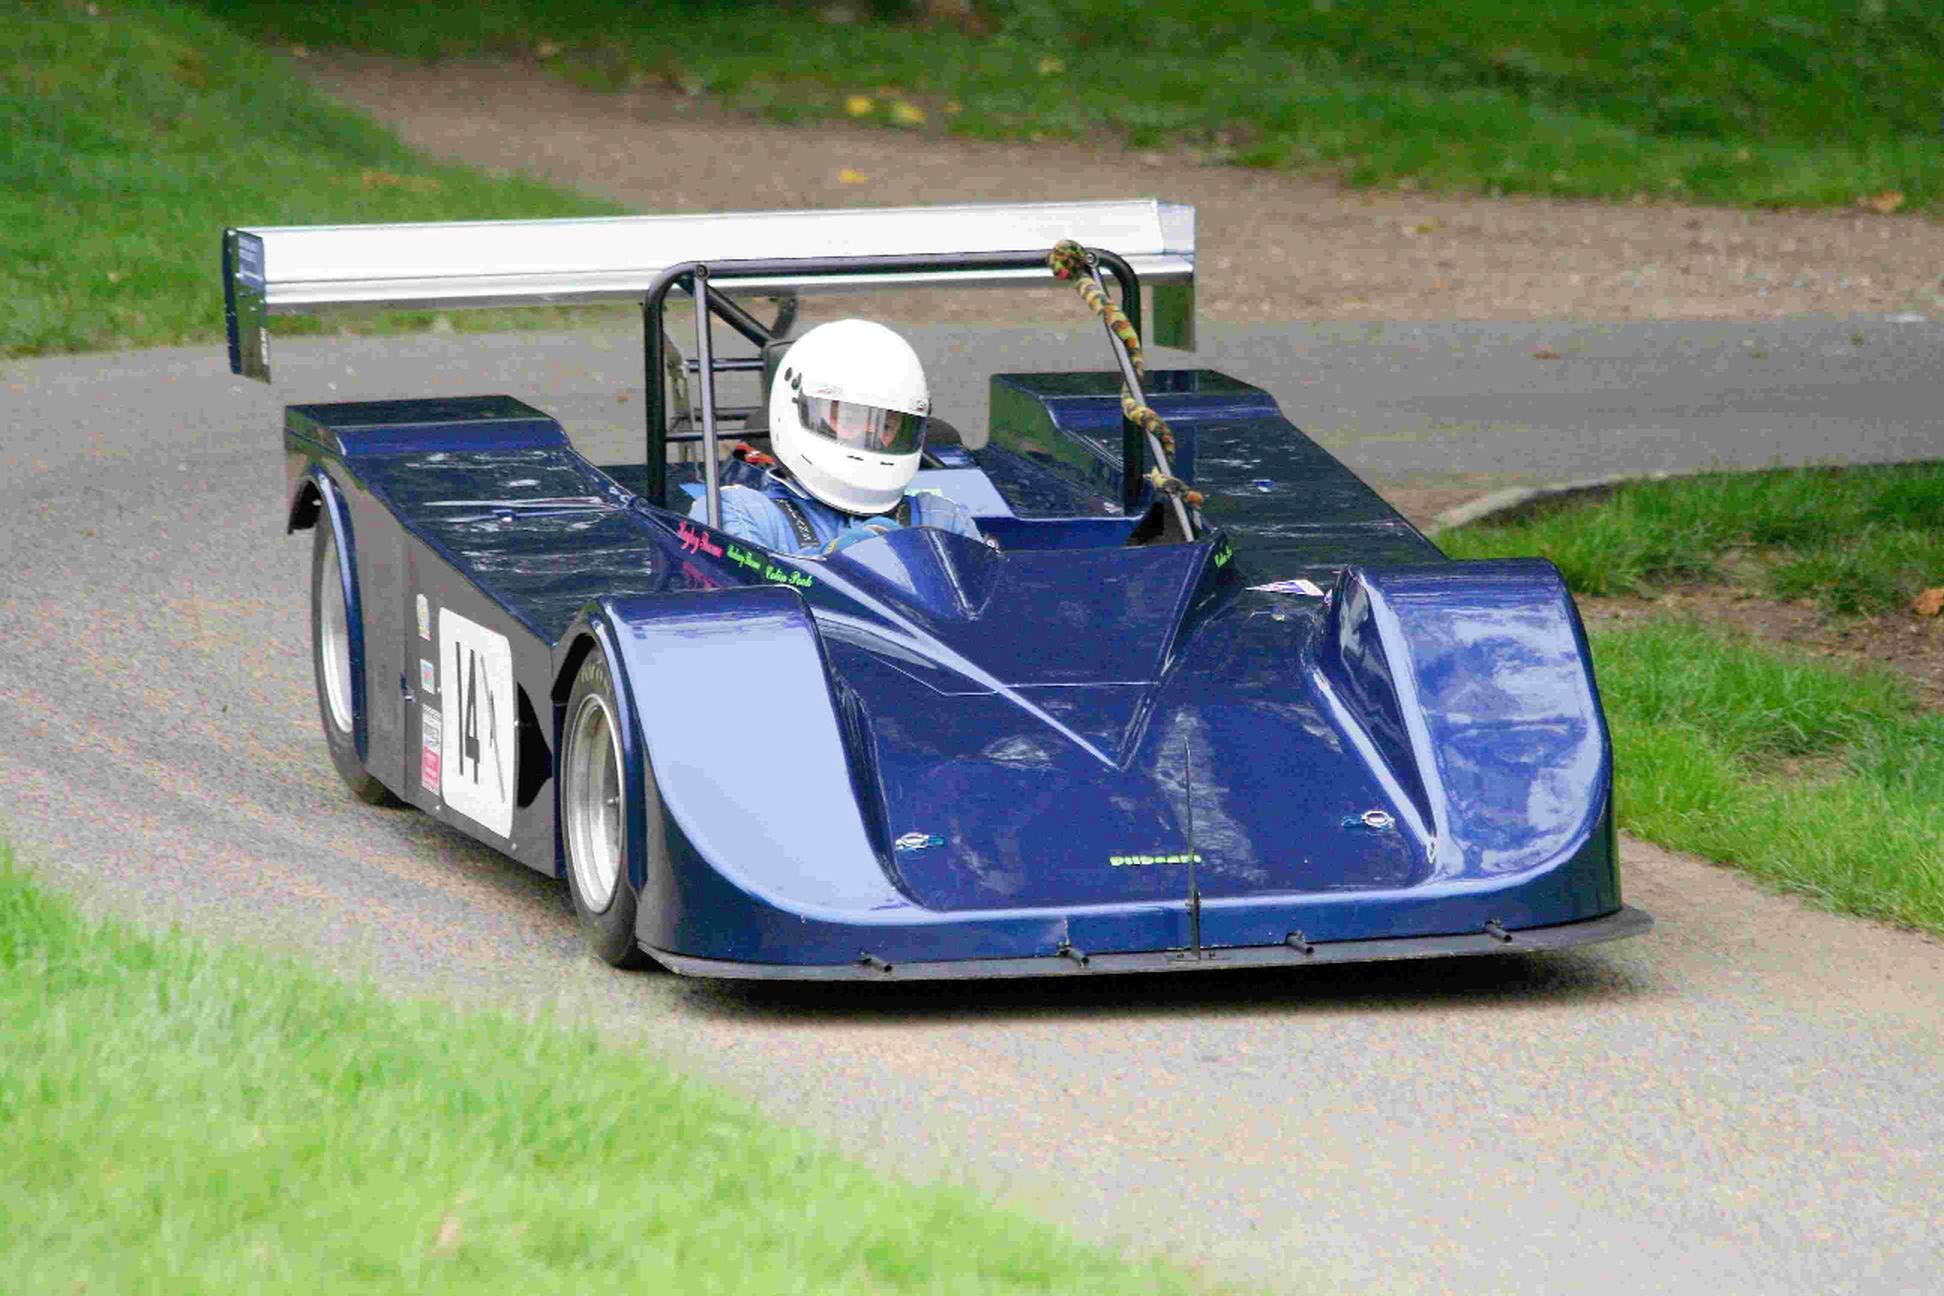 BACK IN THE HOT-SEAT: Rod Thorne will be looking to take his V8 powered Pilbeam sports racer to the fastest tim